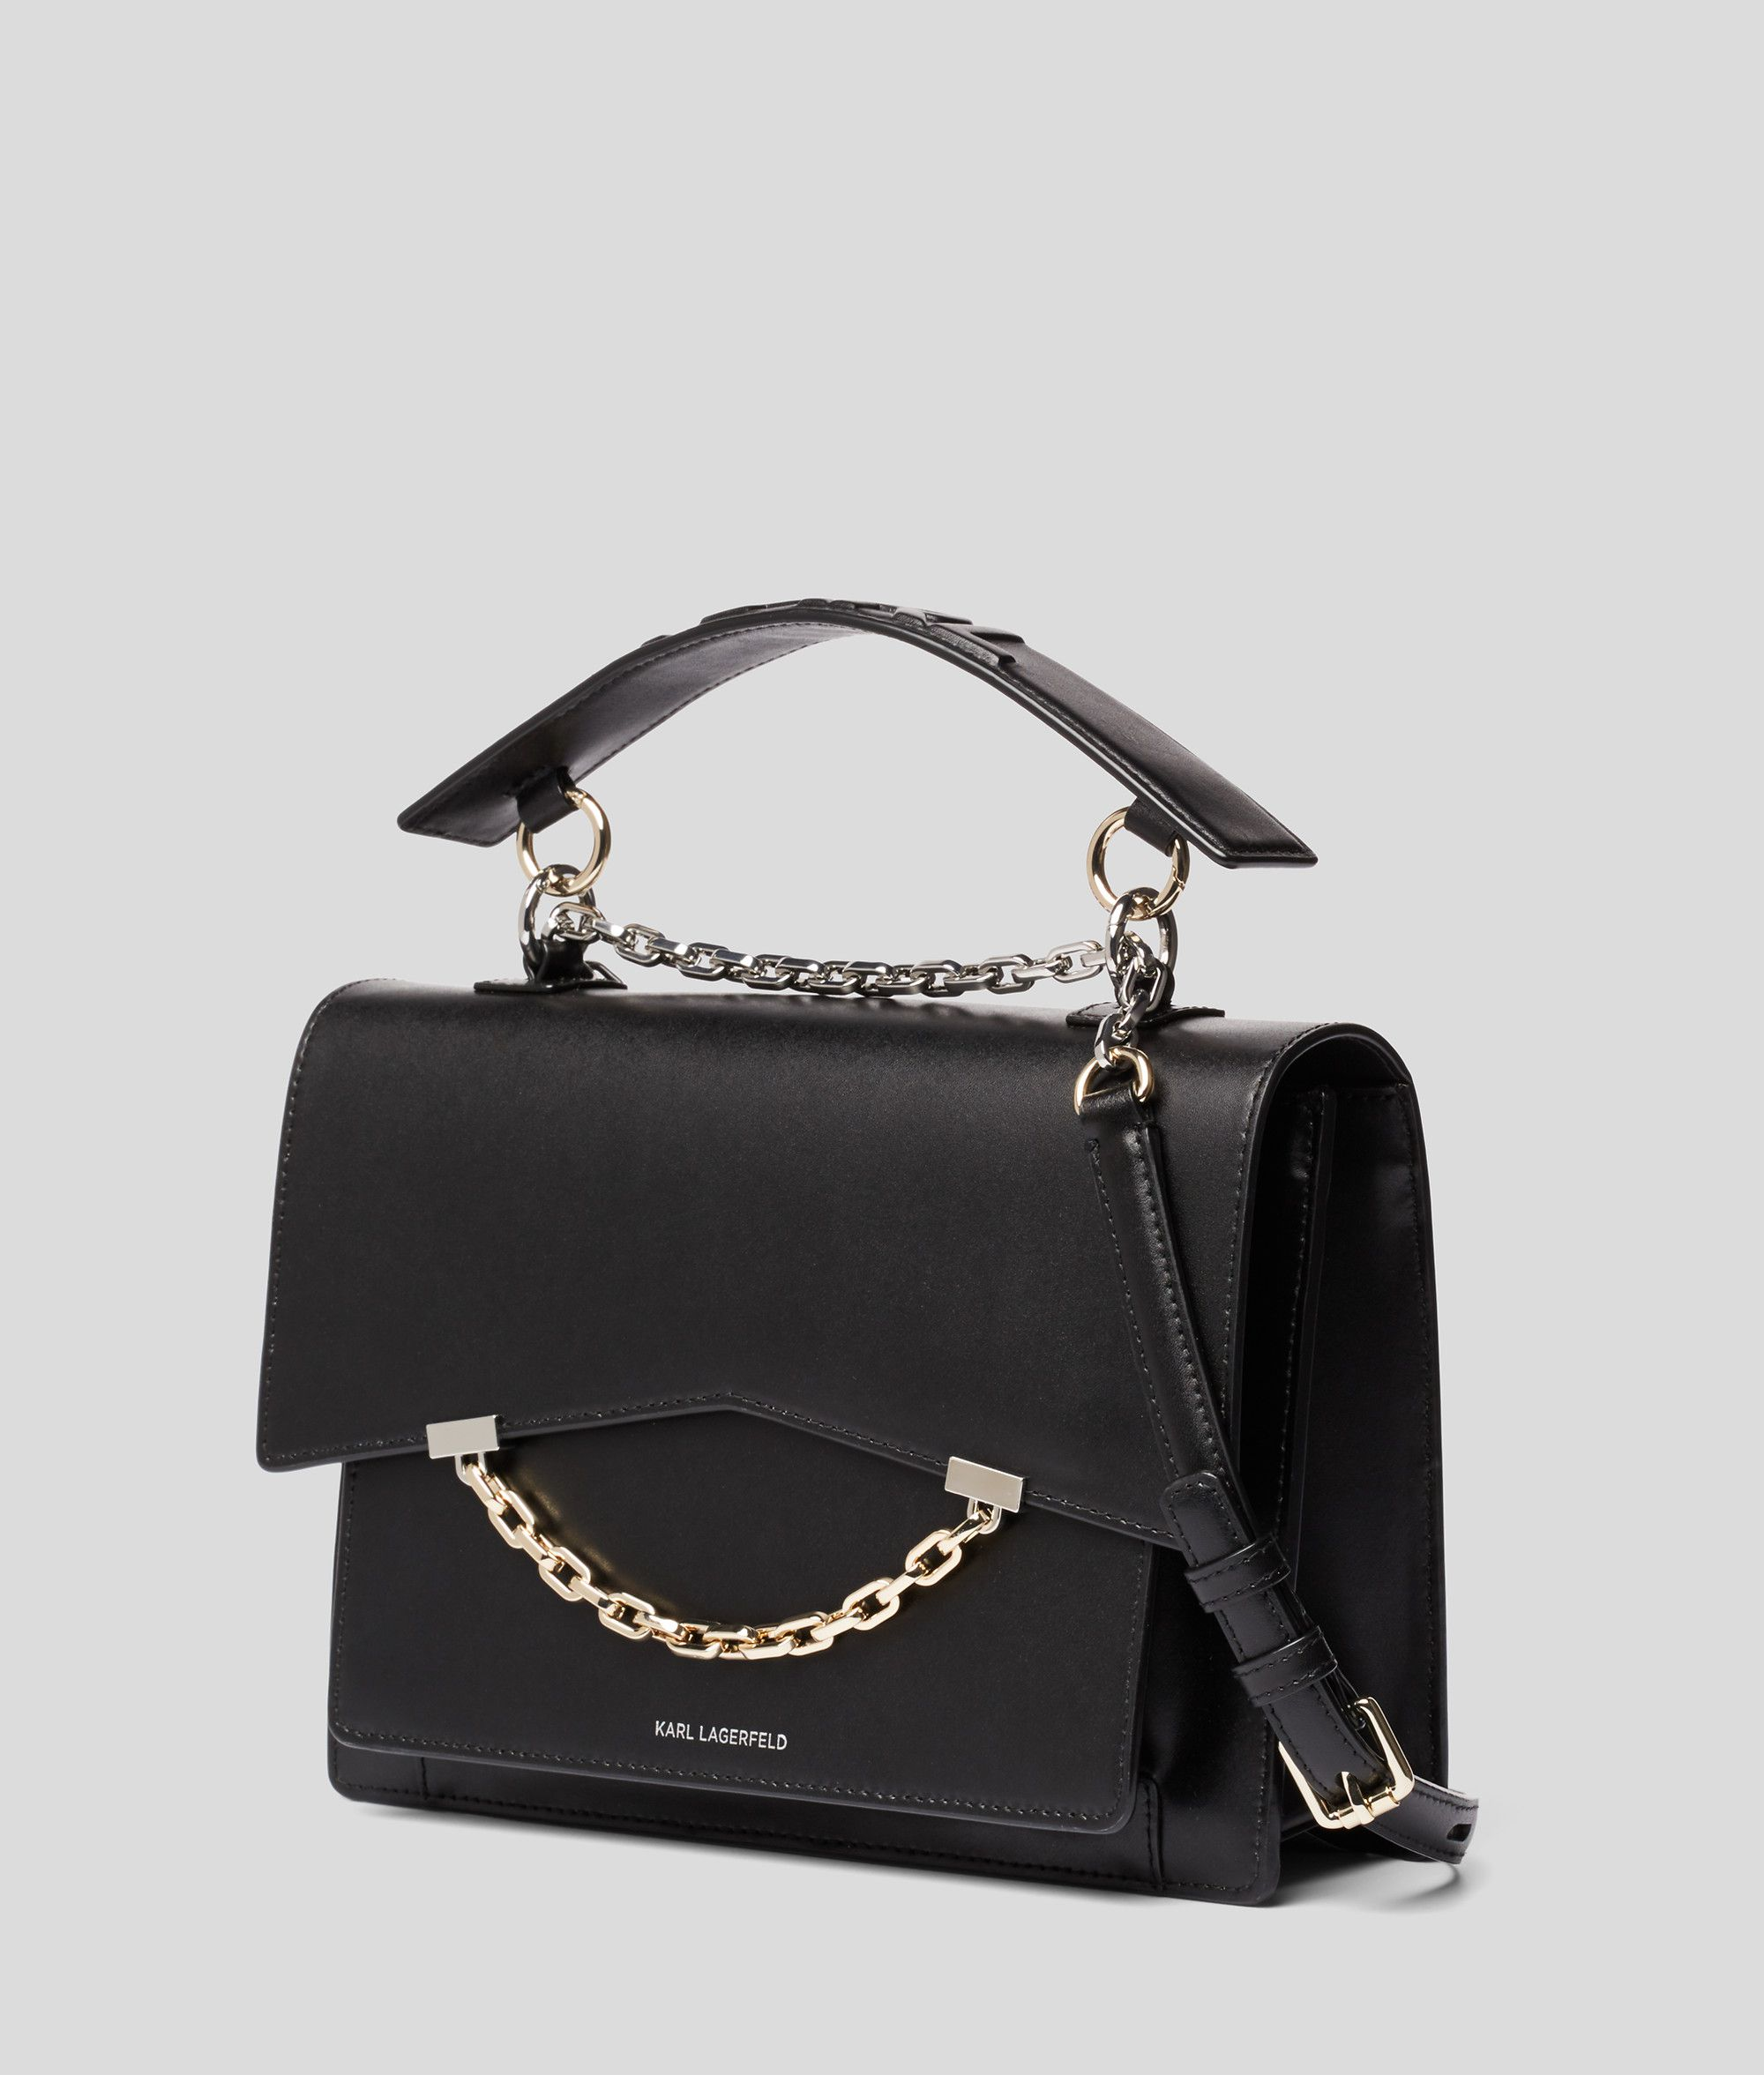 KARL LAGERFELD | Bags | 205W3066,21999/A999